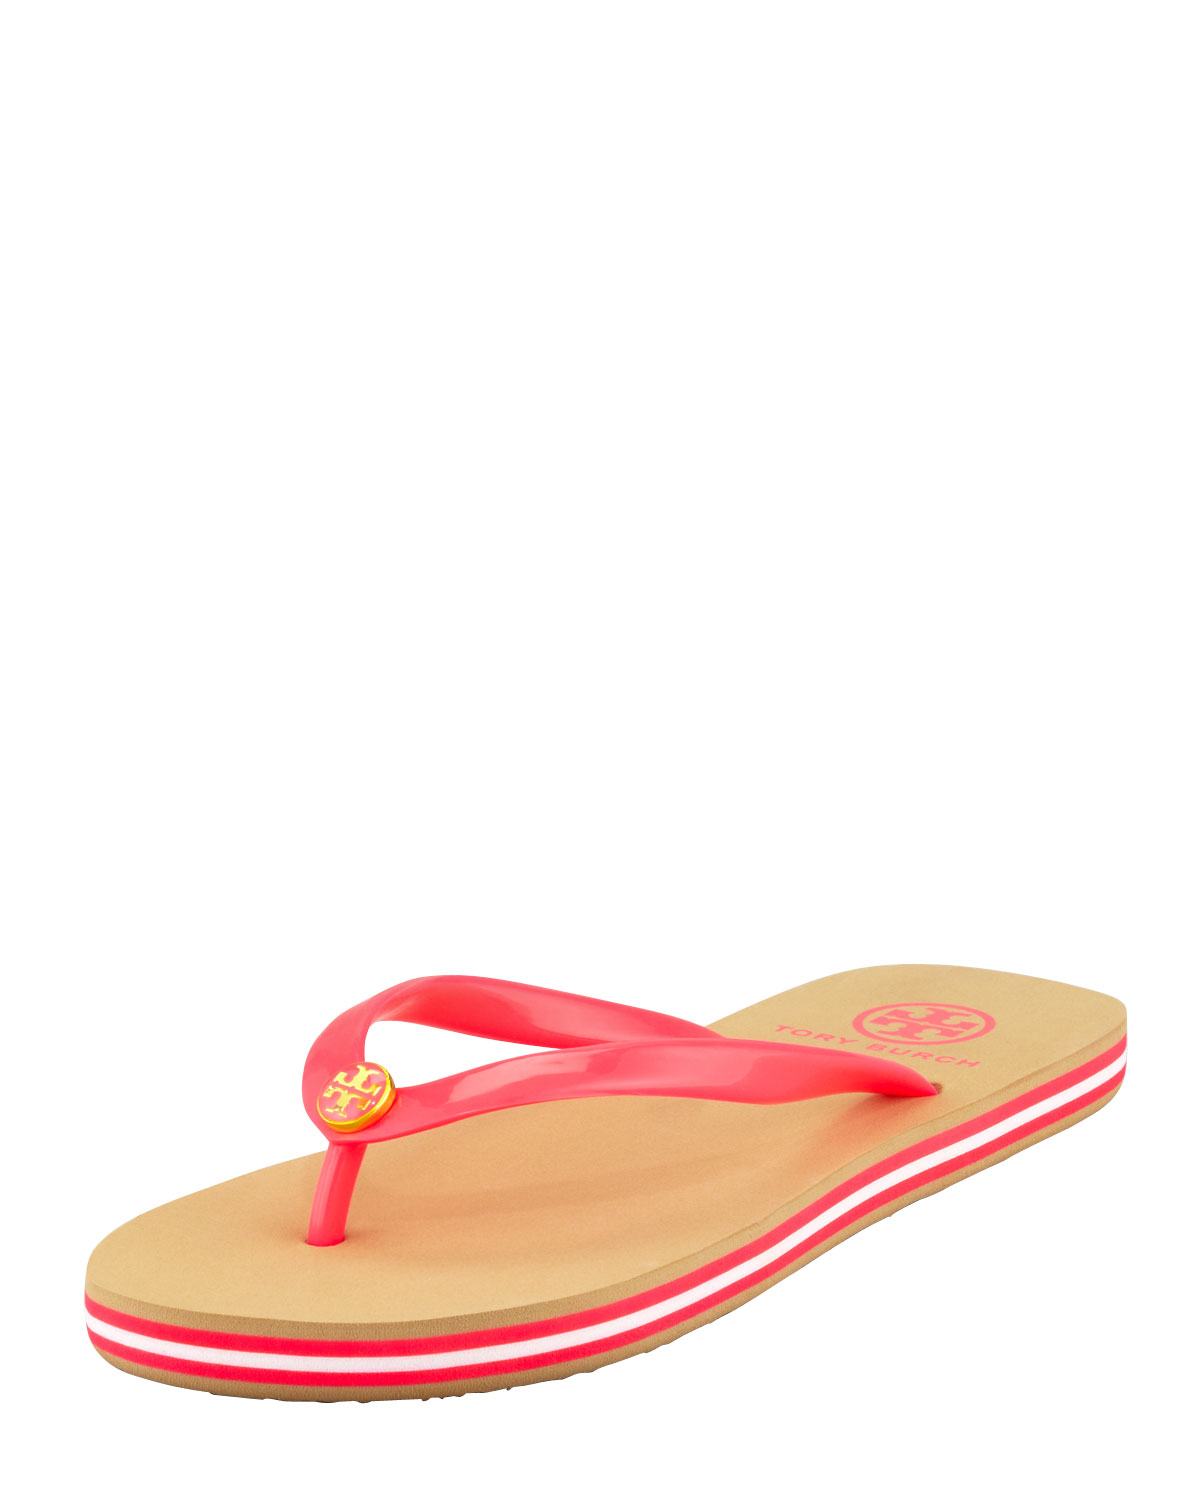 Tory Burch Neon Striped Rubber Flip Flop Neon Pink In Red